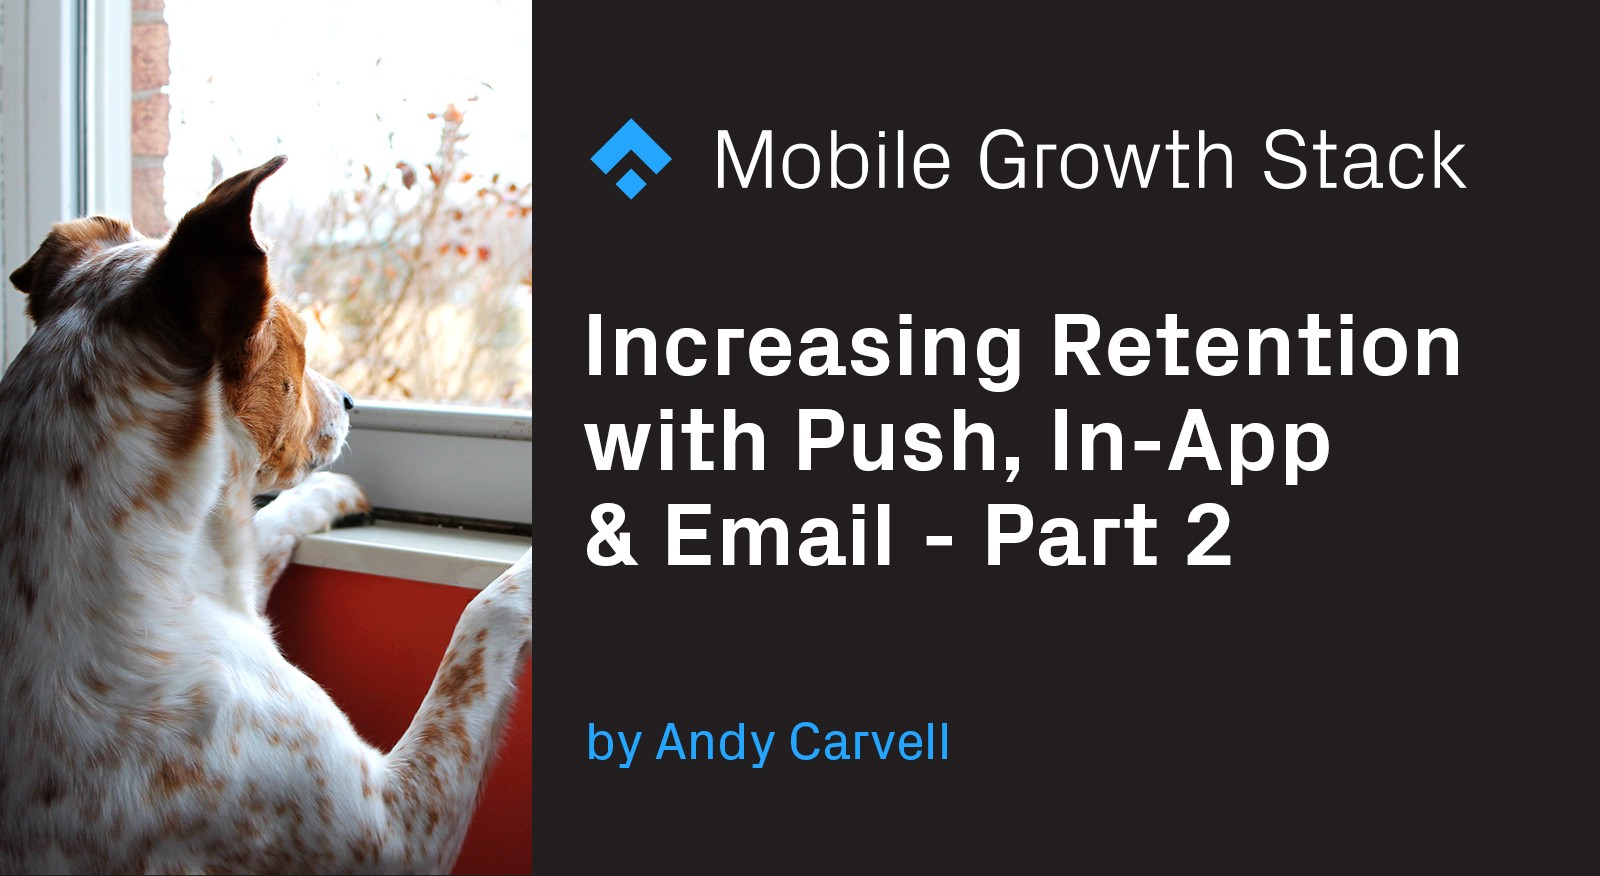 Increasing Retention with Push, In-App and Email Part 2: Developing